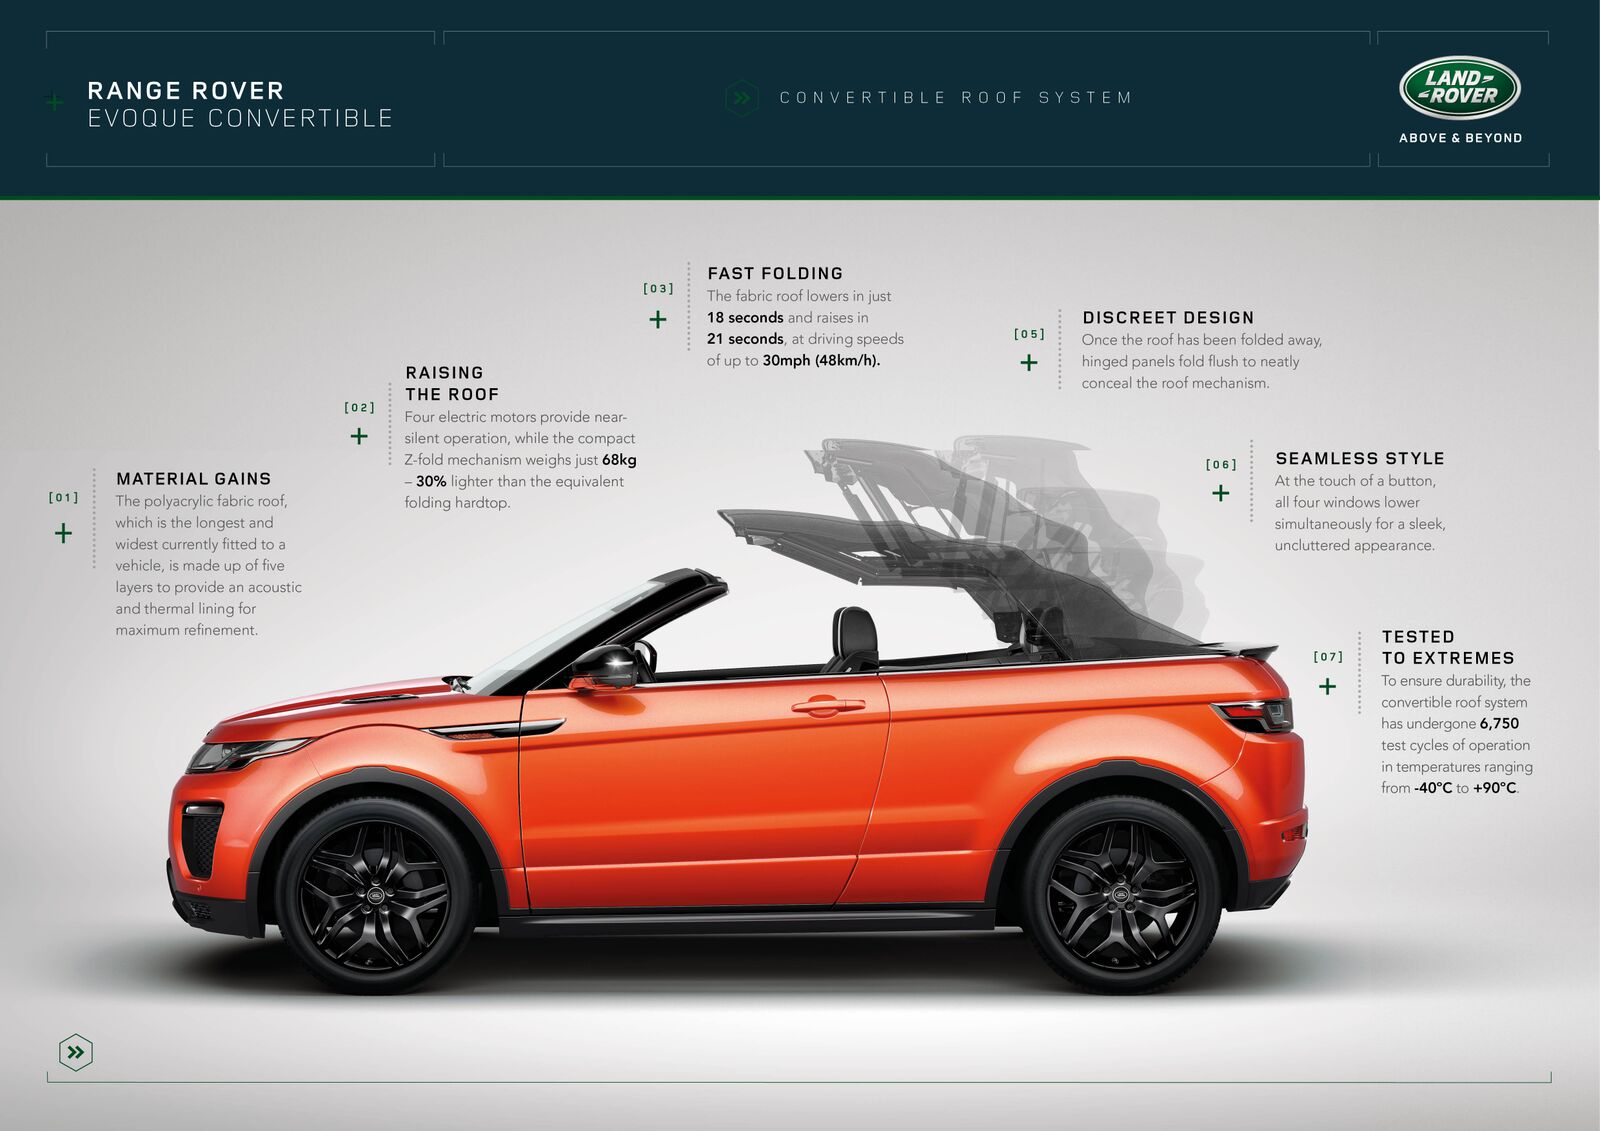 Range Rover Convertible roof system